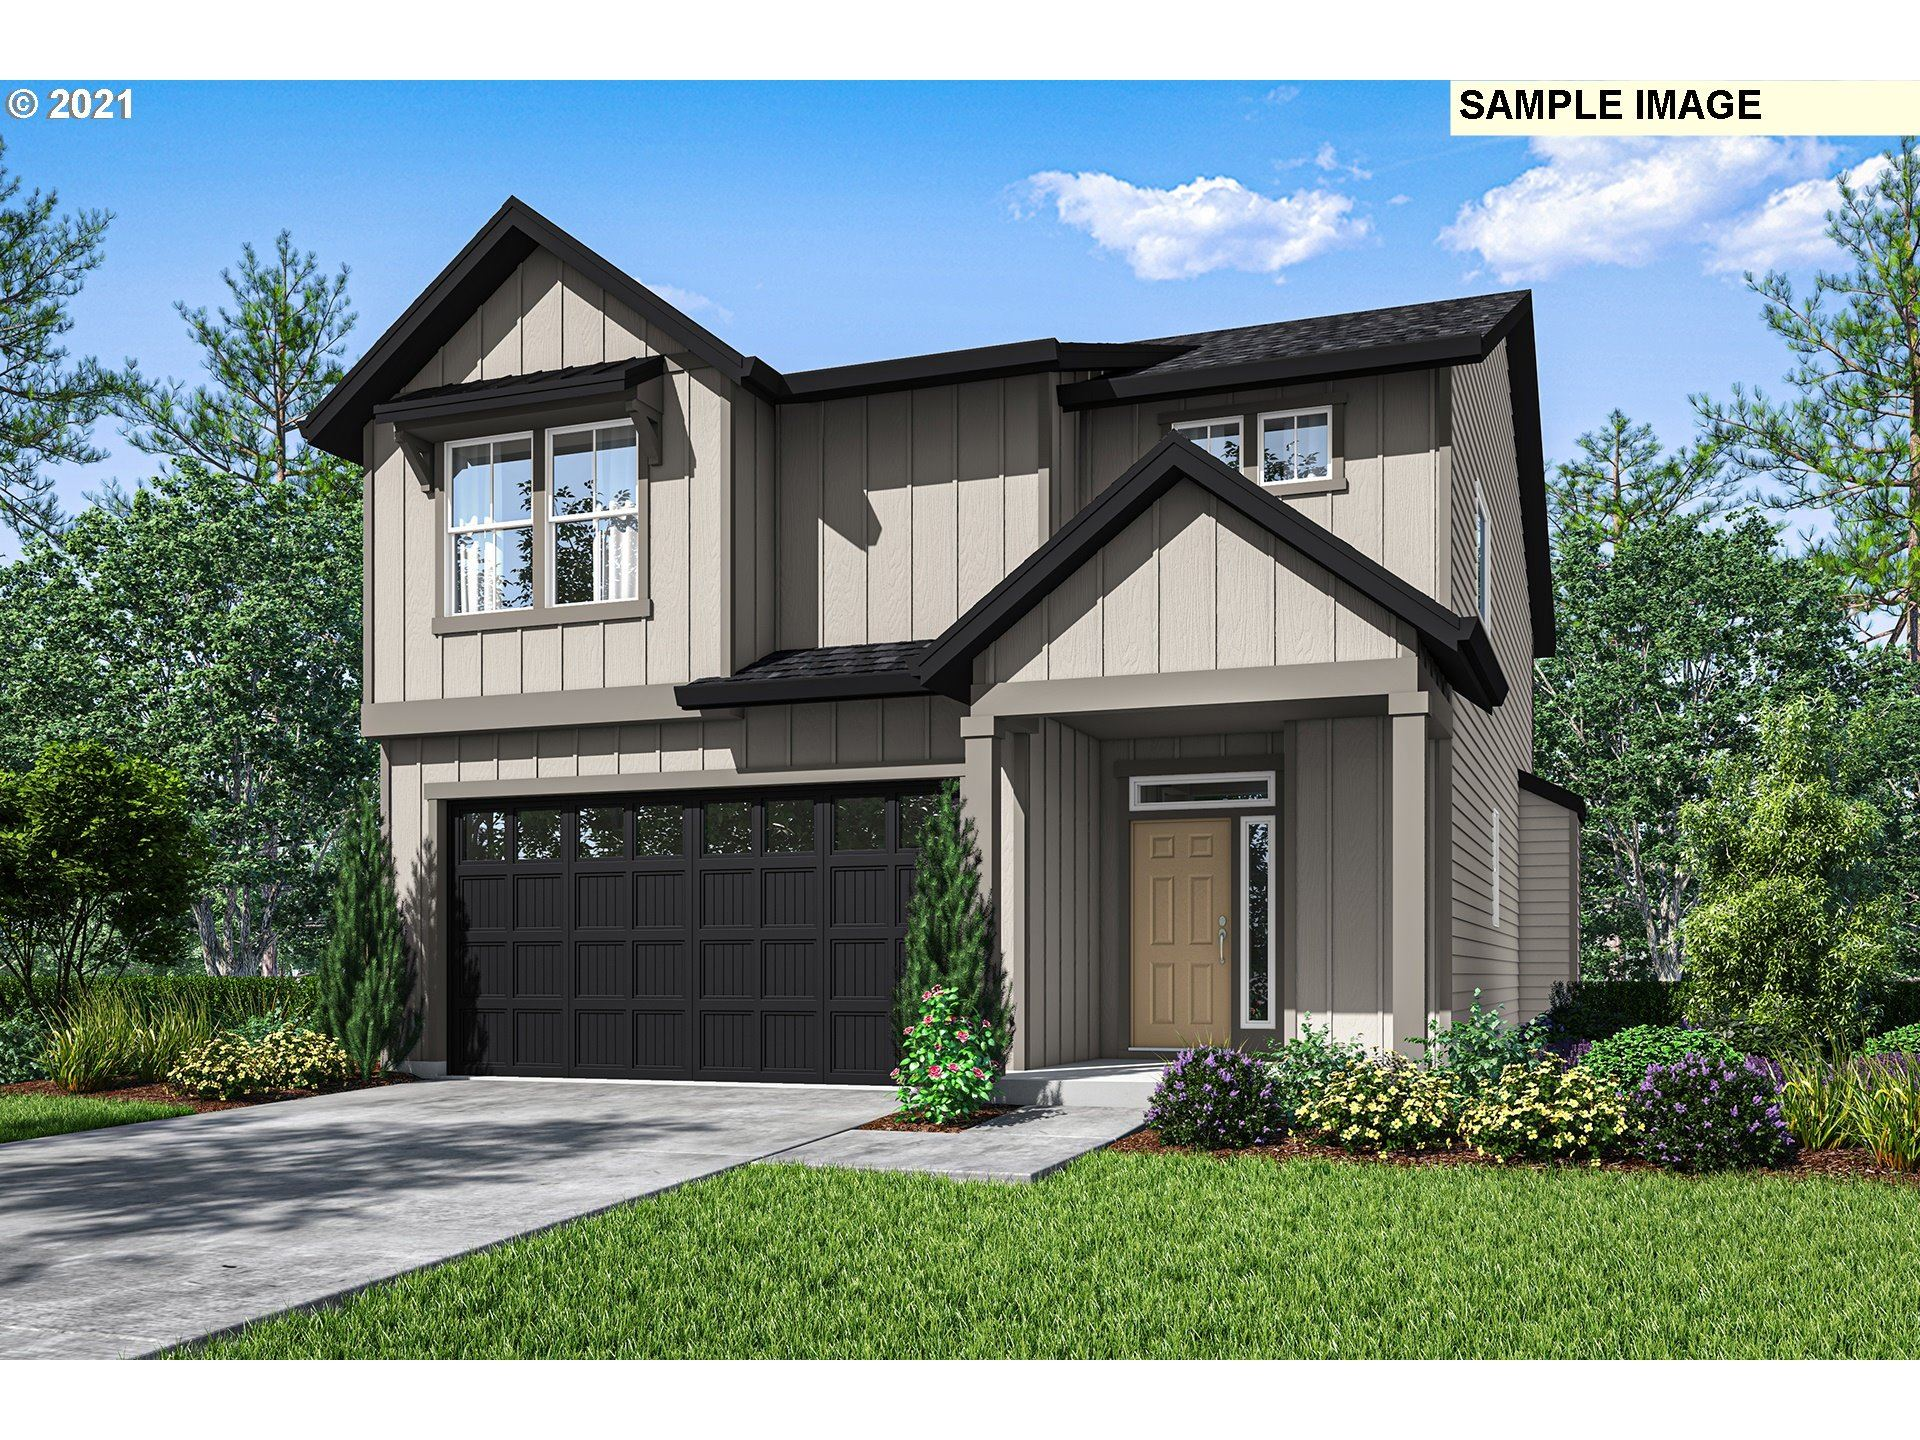 Photo of 2630 NW Gregory #38, McMinnville, OR 97128 (MLS # 21605541)